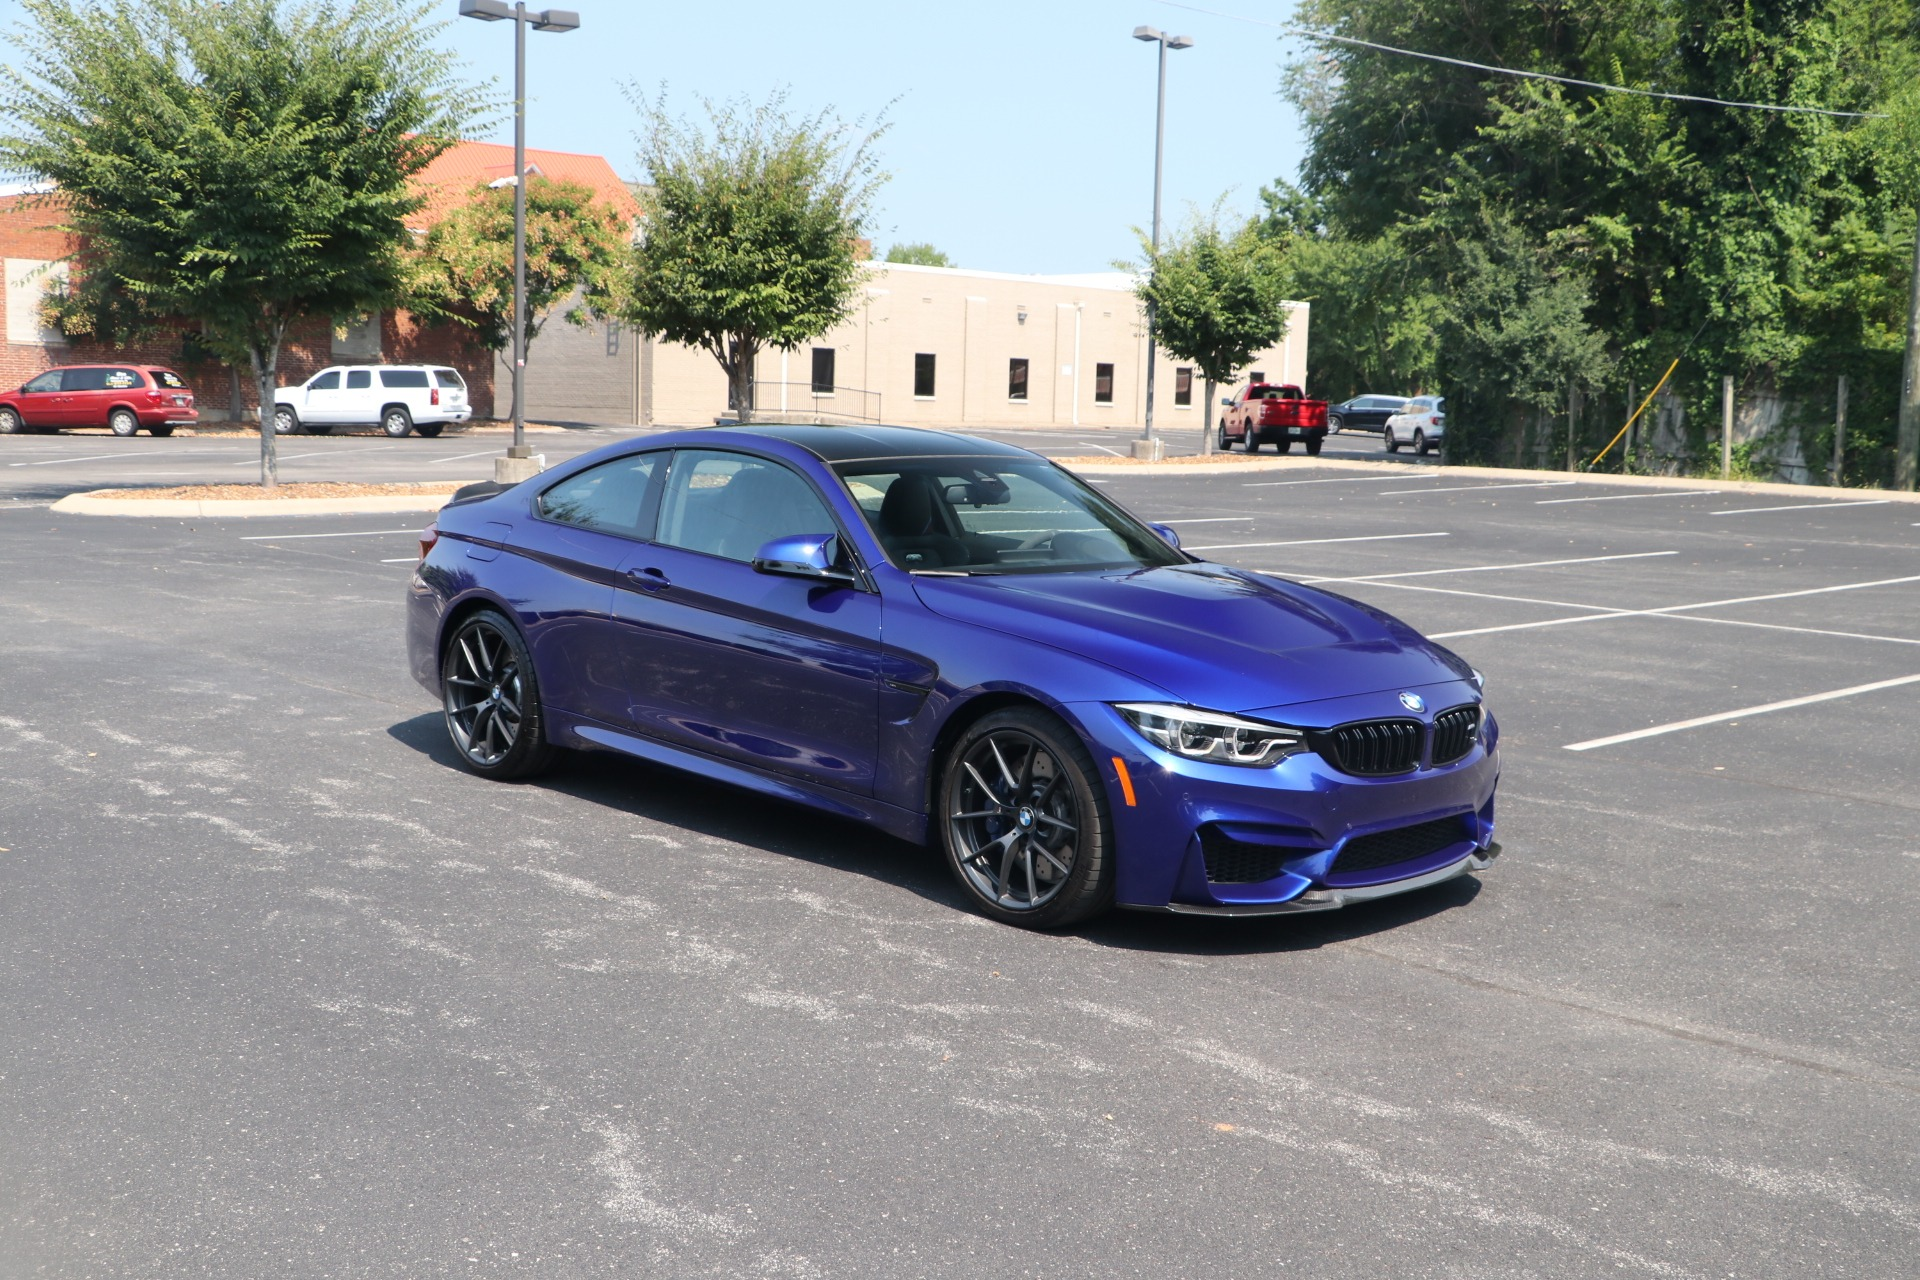 Used 2020 BMW M4 CS COUPE W/EXECUTIVE PKG for sale $87,500 at Auto Collection in Murfreesboro TN 37130 1